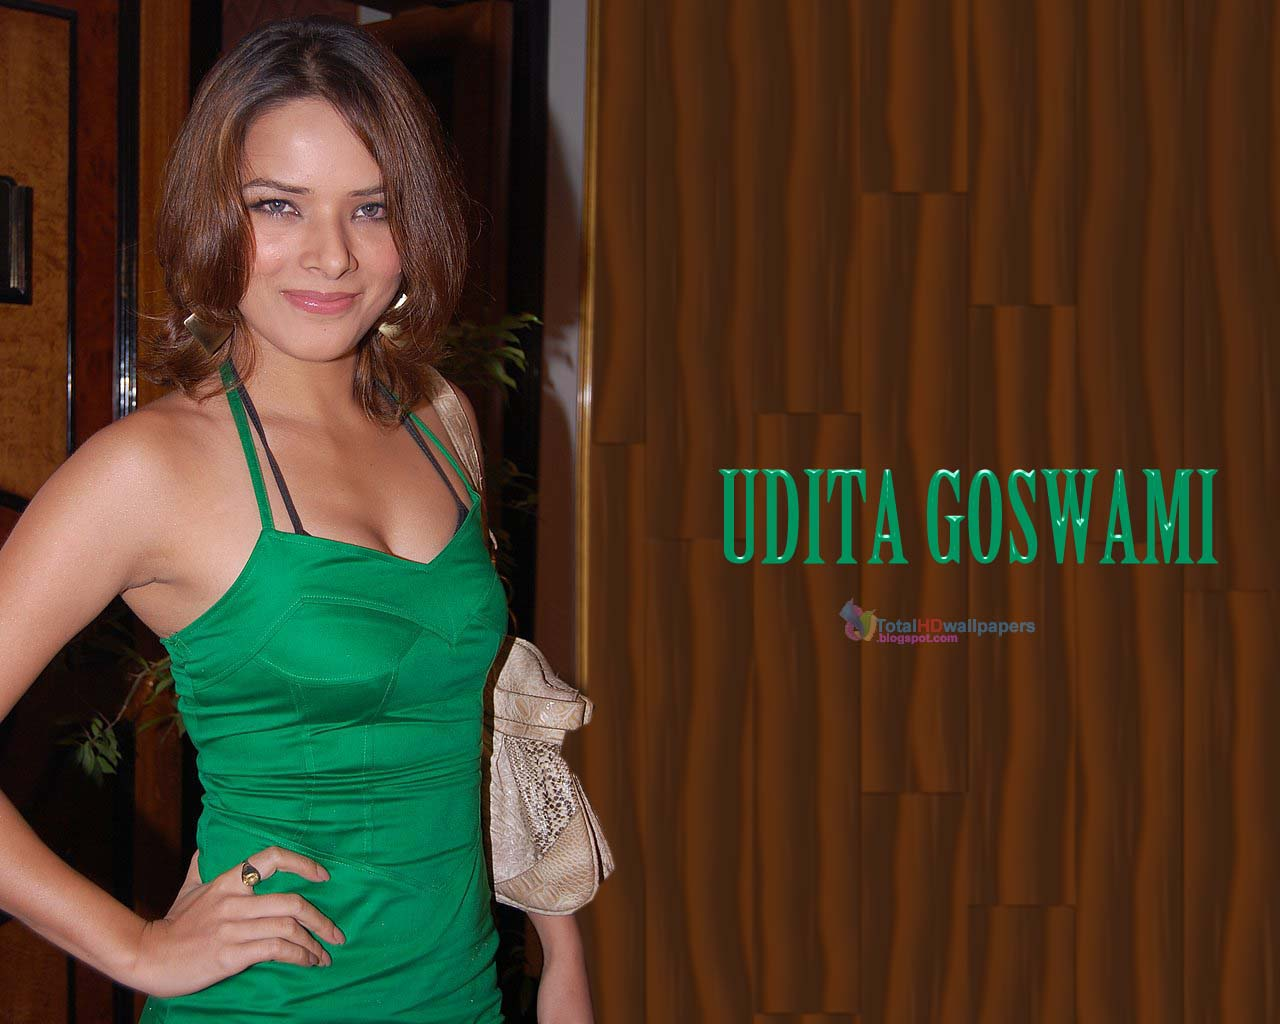 date of birth 2 sep 1984 birth place assam india star sign virgo udita goswami height 5 7 eye colour green schoool days d a v public school